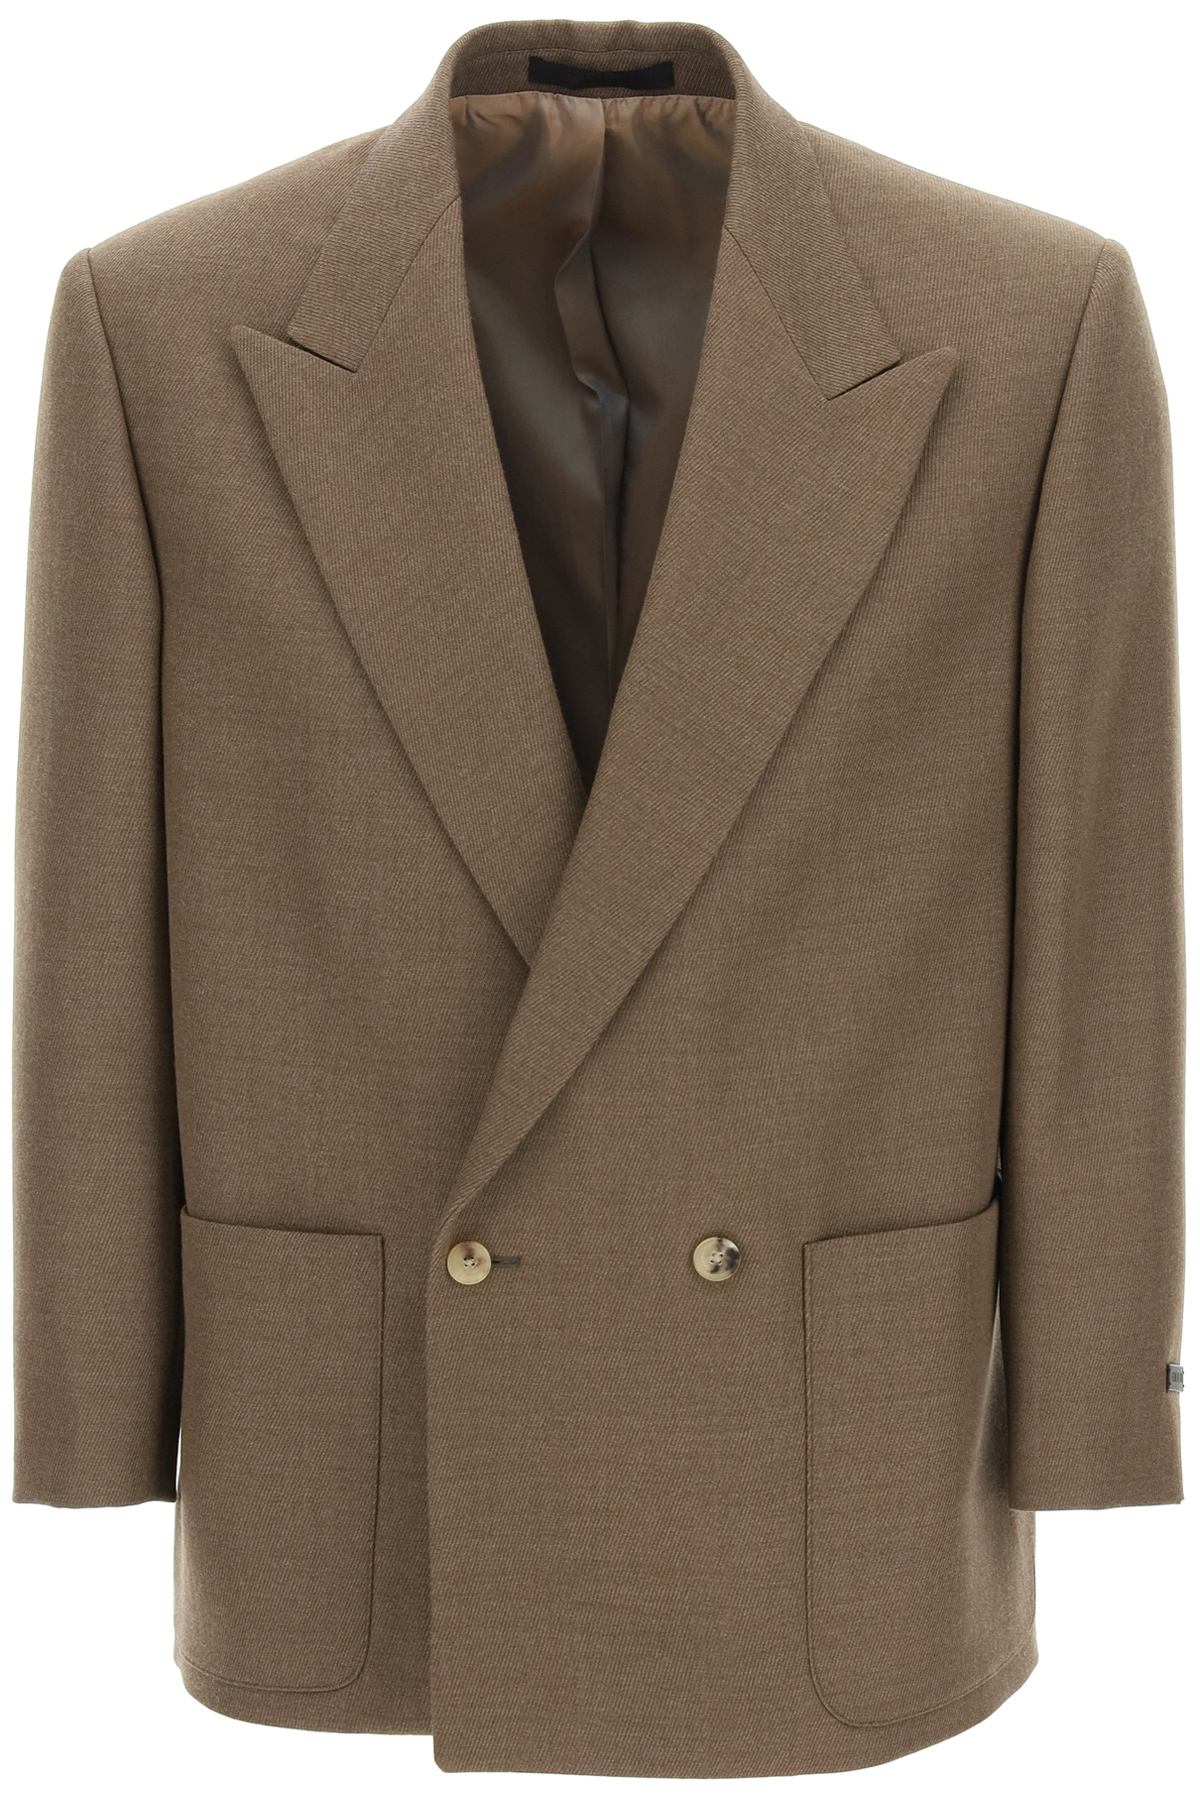 Fear of god giacca the suit